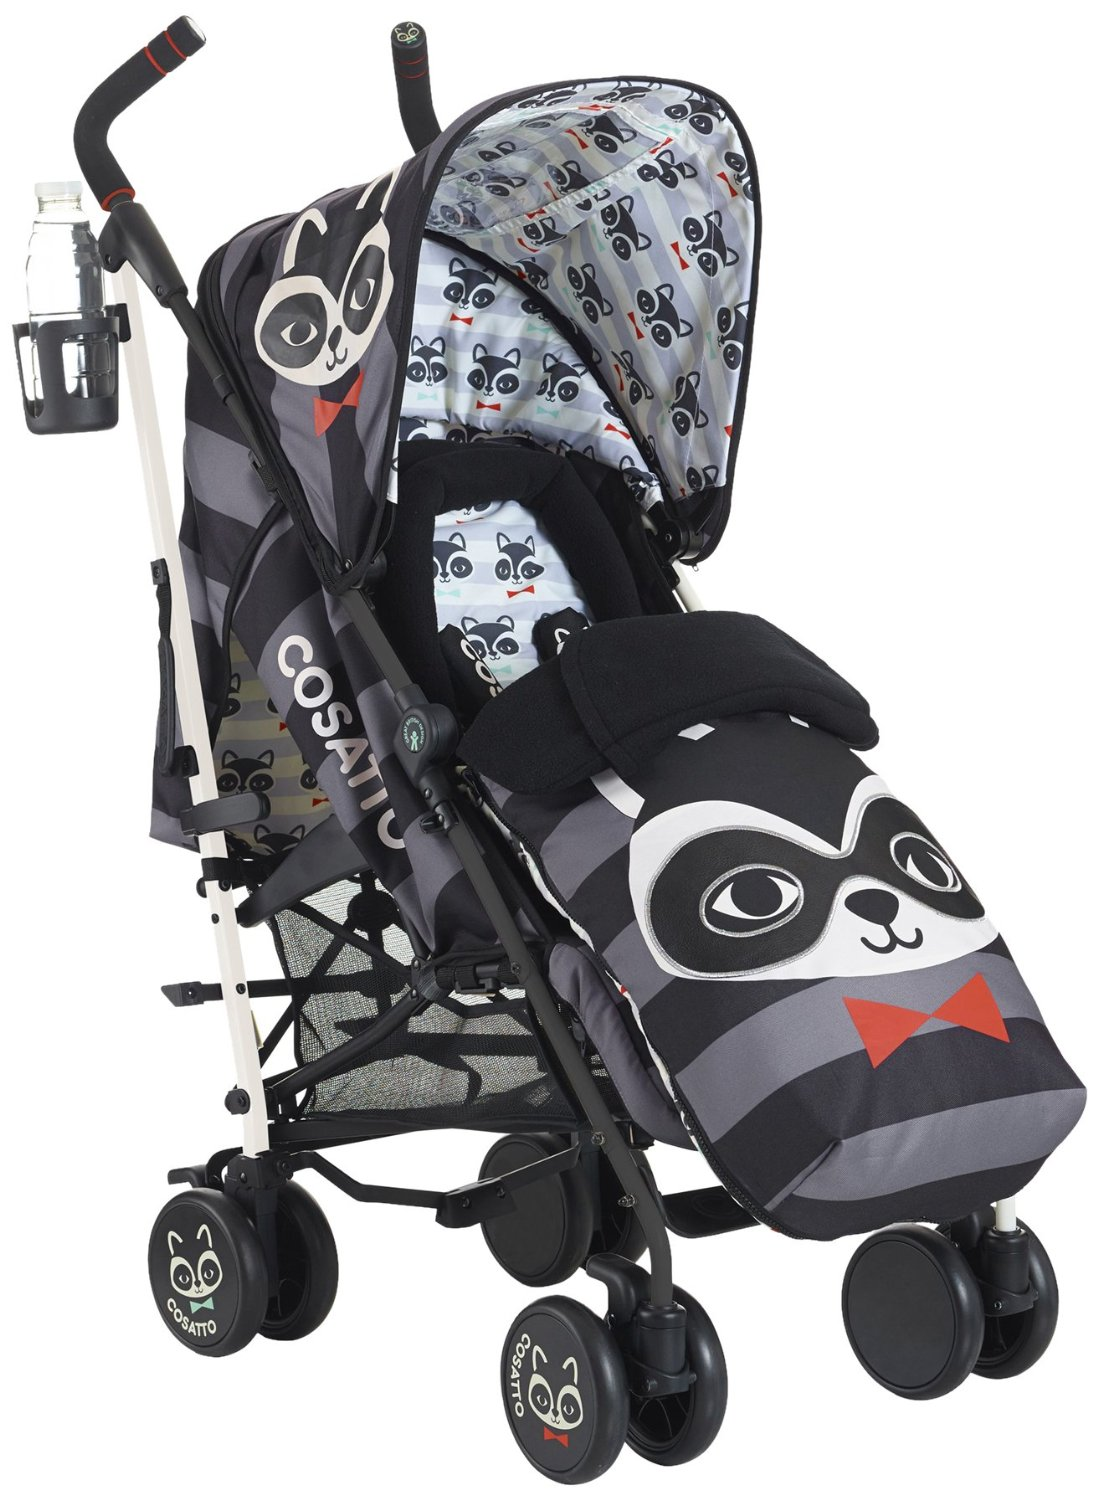 Pushchairs Amp Prams Shop Amazon Uk